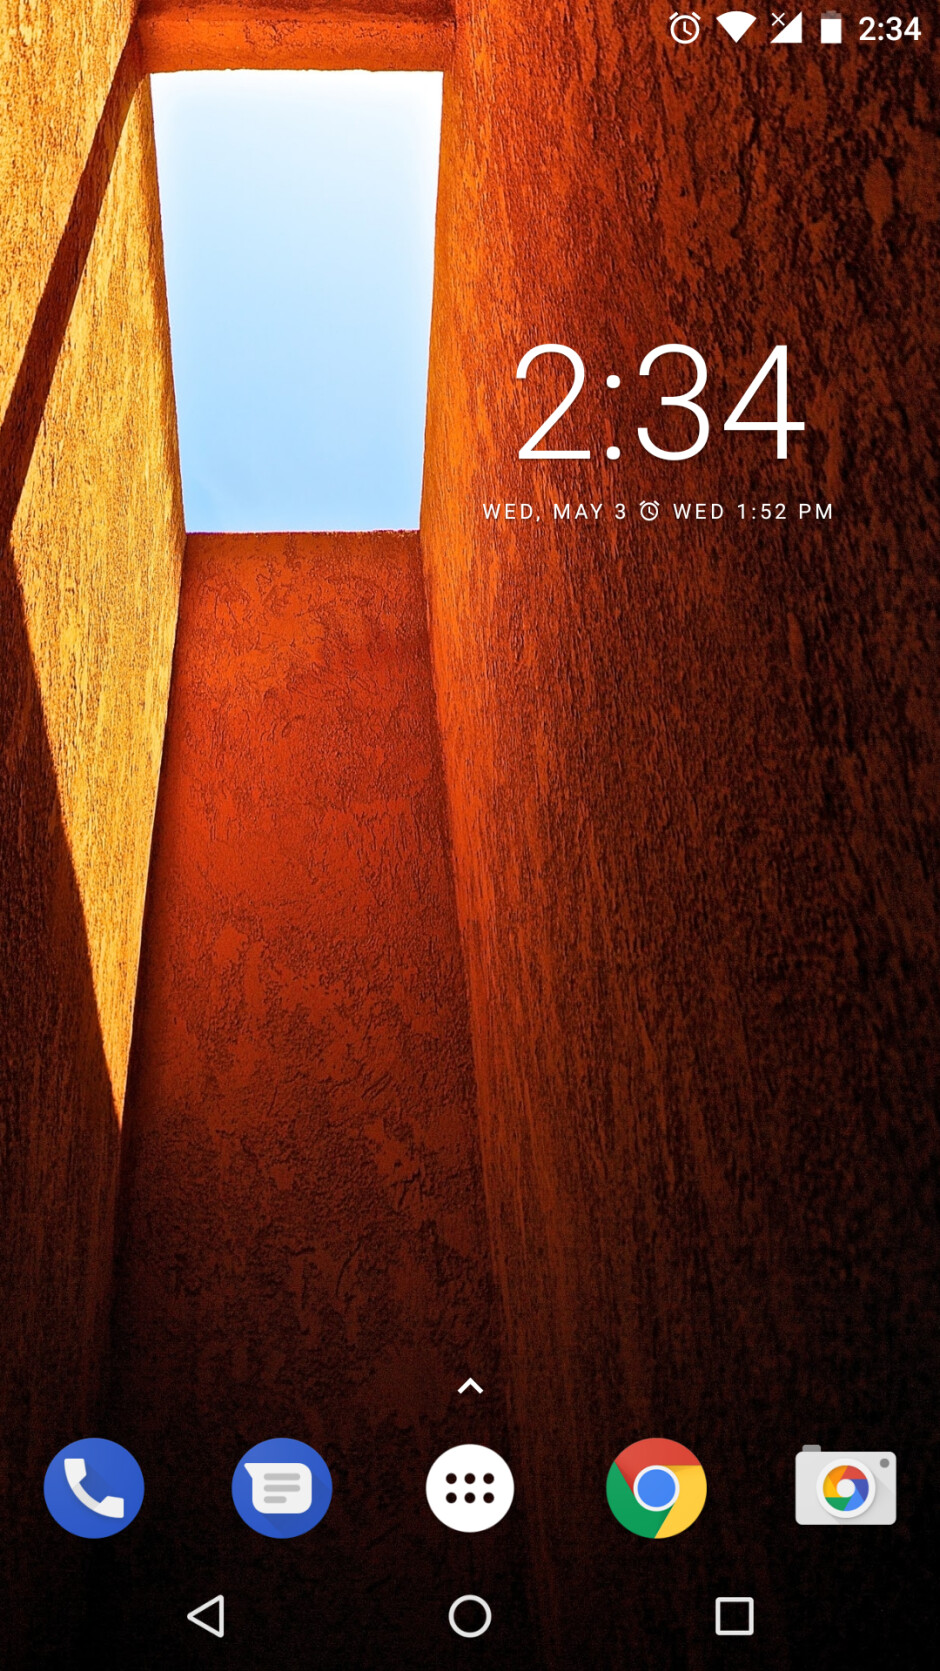 Google's Wallpapers app now offers even more free, high-res wallpapers